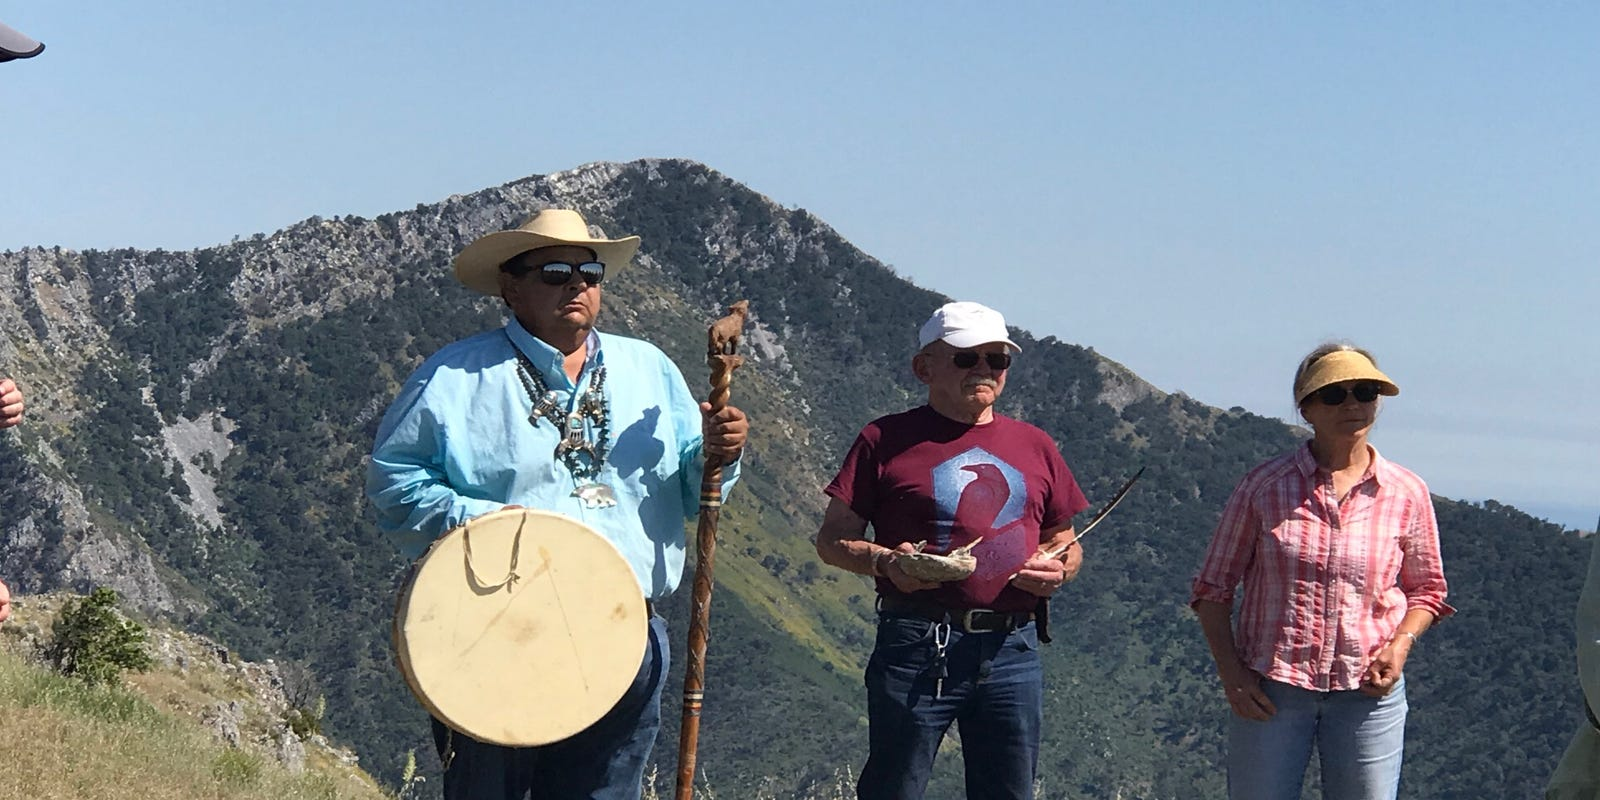 https://eu.thecalifornian.com/story/news/2020/07/31/california-tribe-buys-land-back-after-250-years-landless/5557247002/